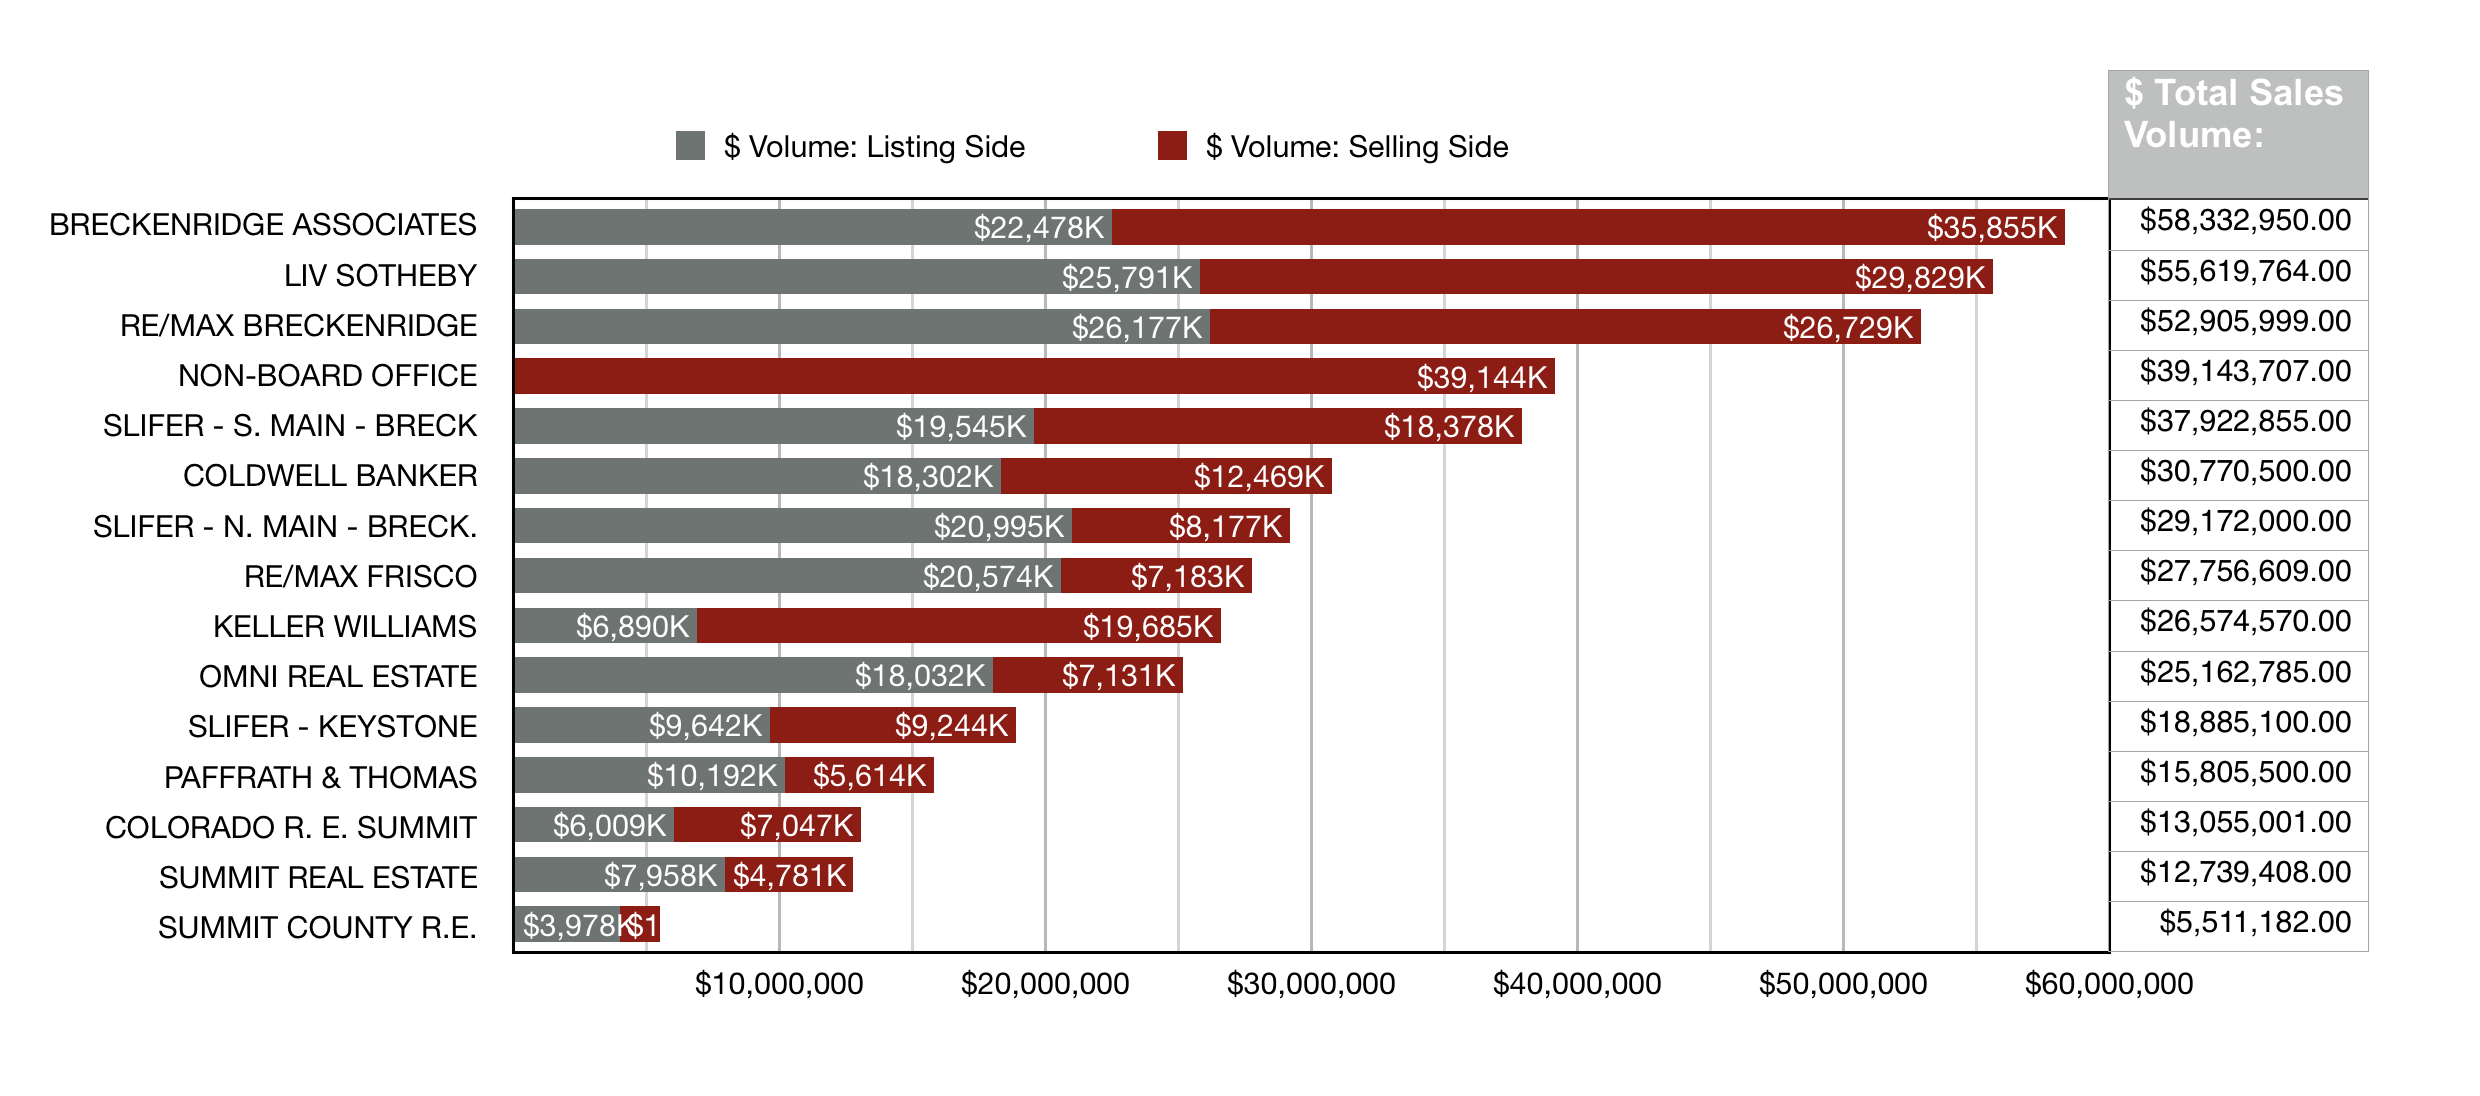 chart of Breckenridge Real Estate sales 2016 by top selling offices